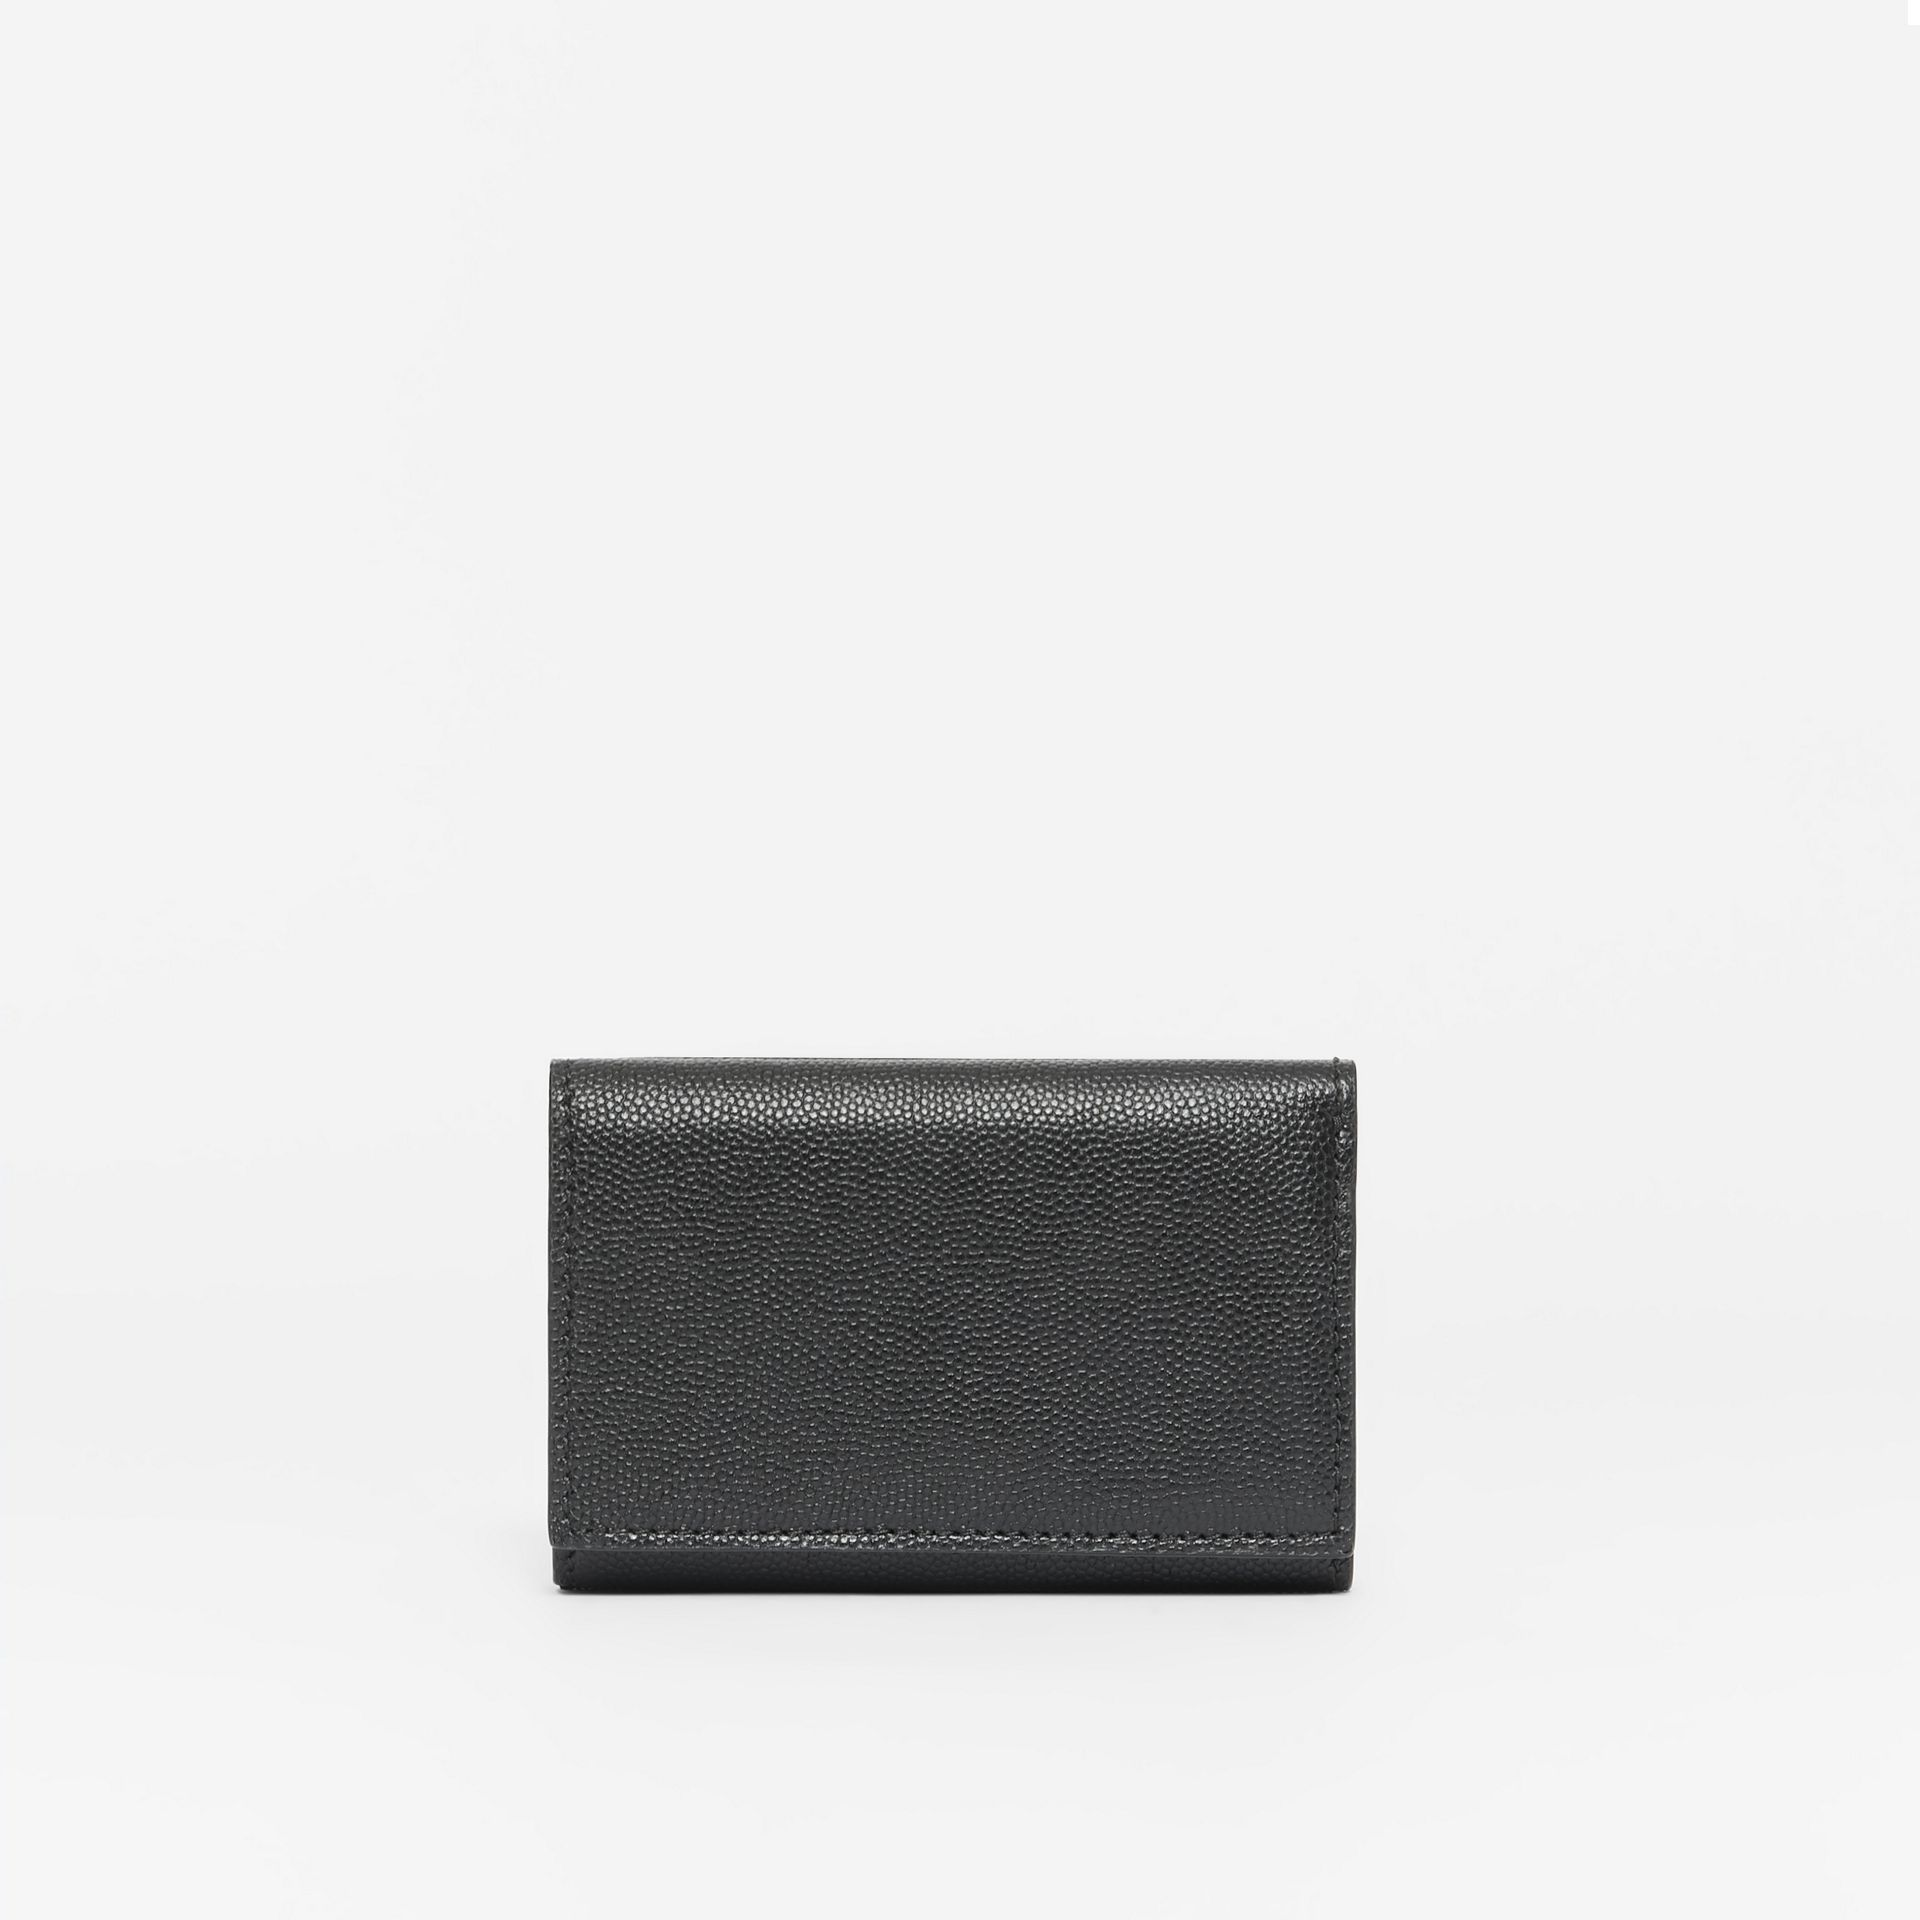 Small Grainy Leather Folding Wallet in Black - Women | Burberry - gallery image 4